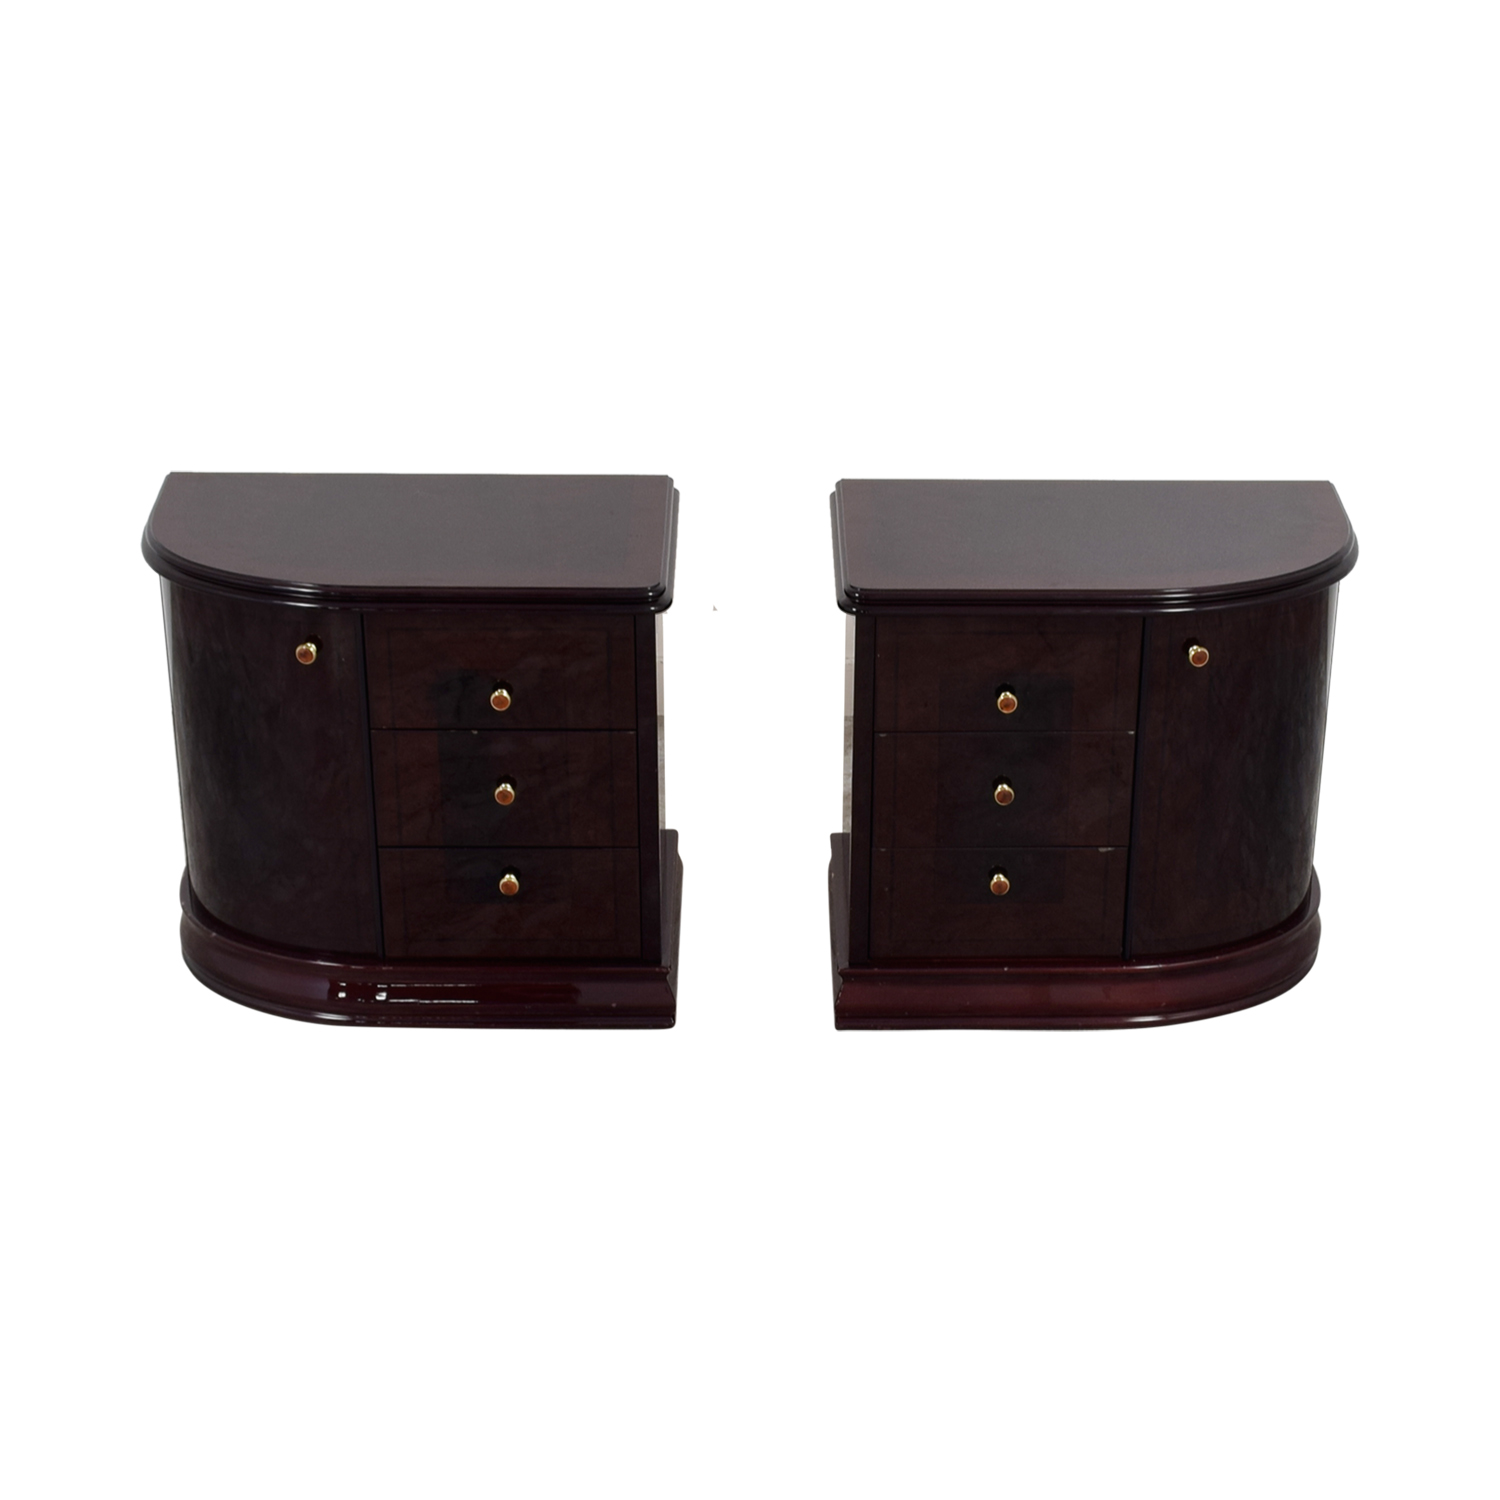 Curvo Camere Curvo Camere Brown Nightstands End Tables